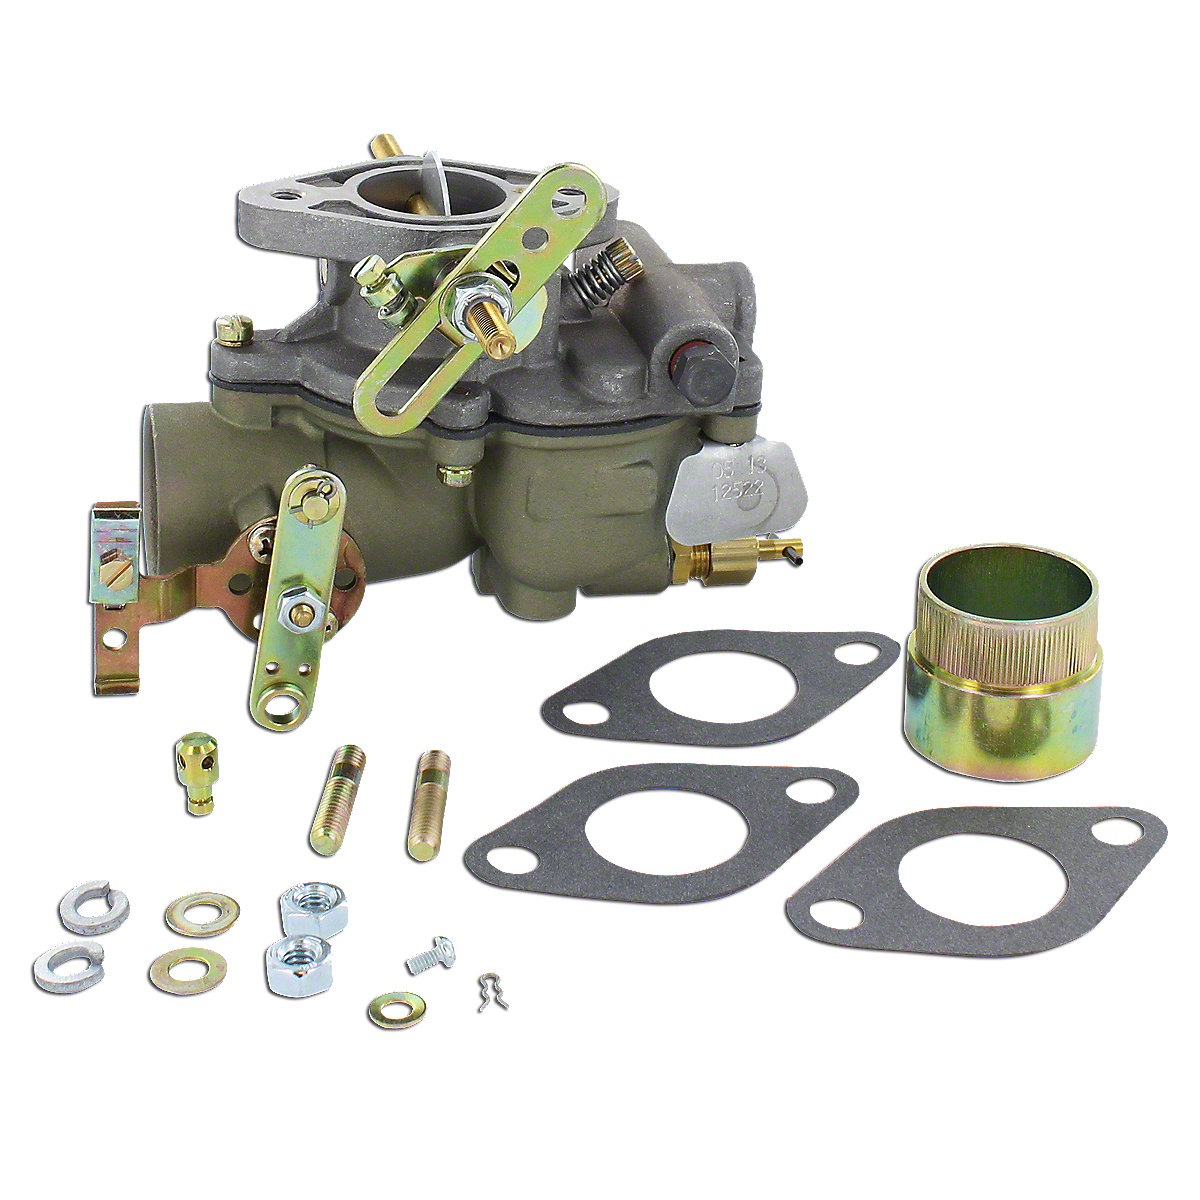 New Zenith Universal Replacement Carburetor For Massey Ferguson: TO20, 30, 81, 82, And Some Massey Harris Tractors.